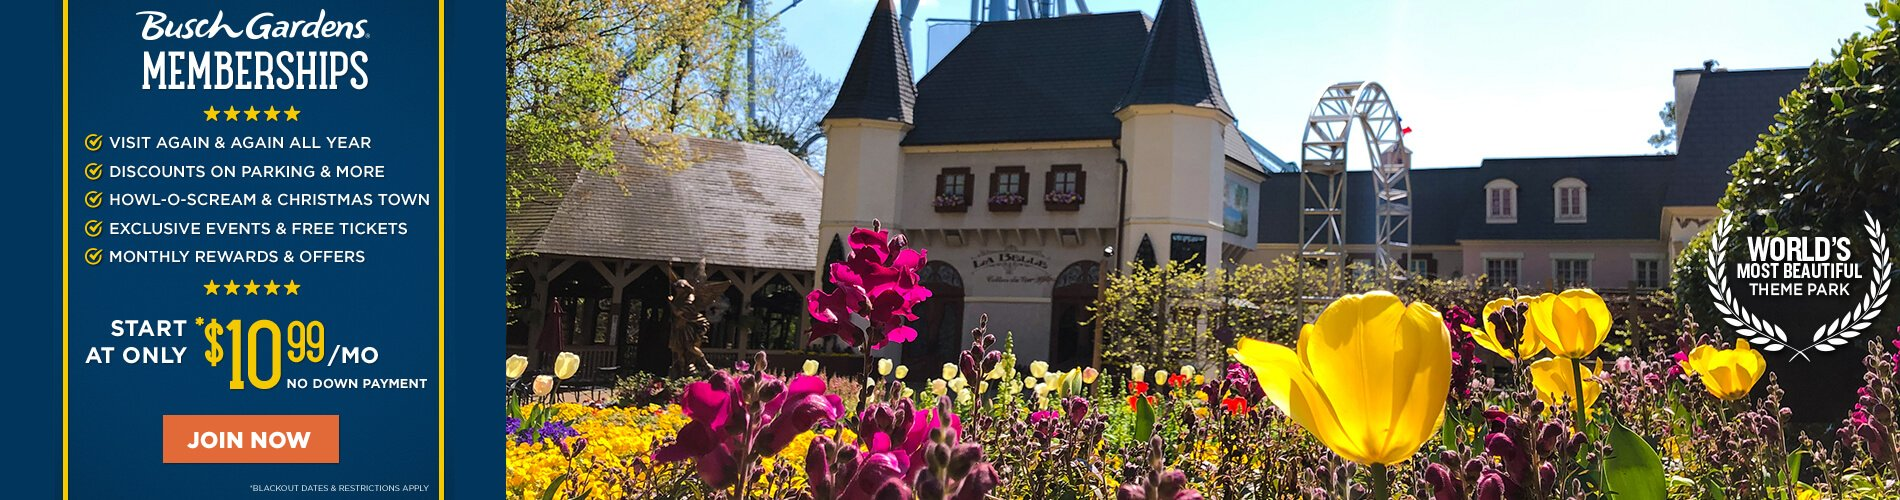 Busch Gardens Williamsburg Membership Plans starting at $10.99/month.